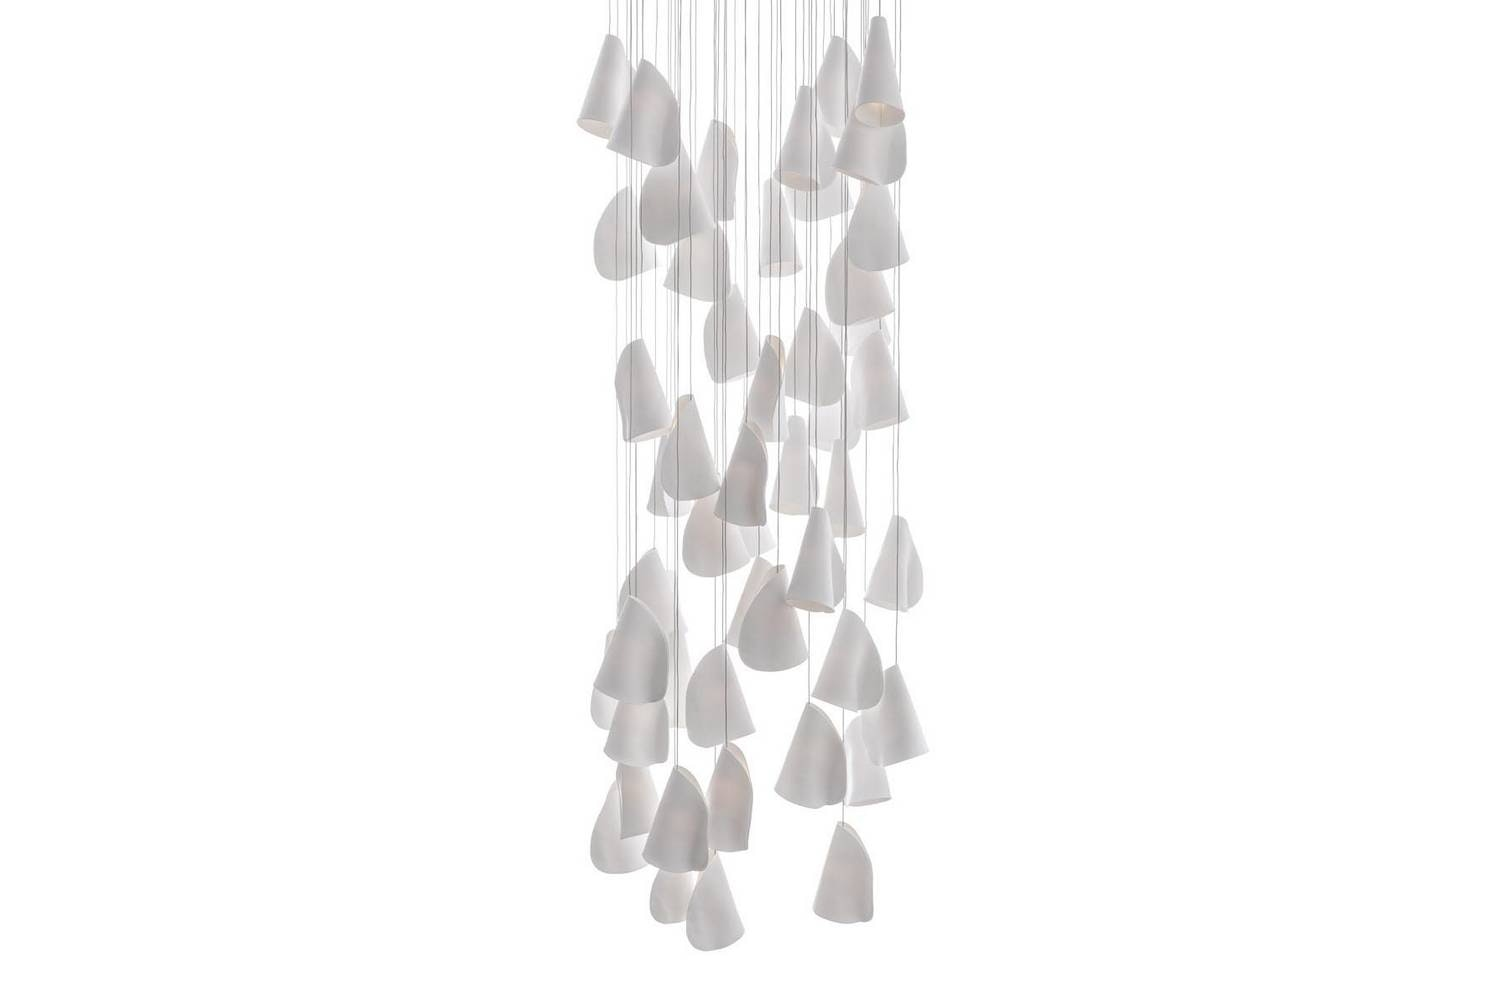 21.50 Suspension Lamp by Omer Arbel for Bocci